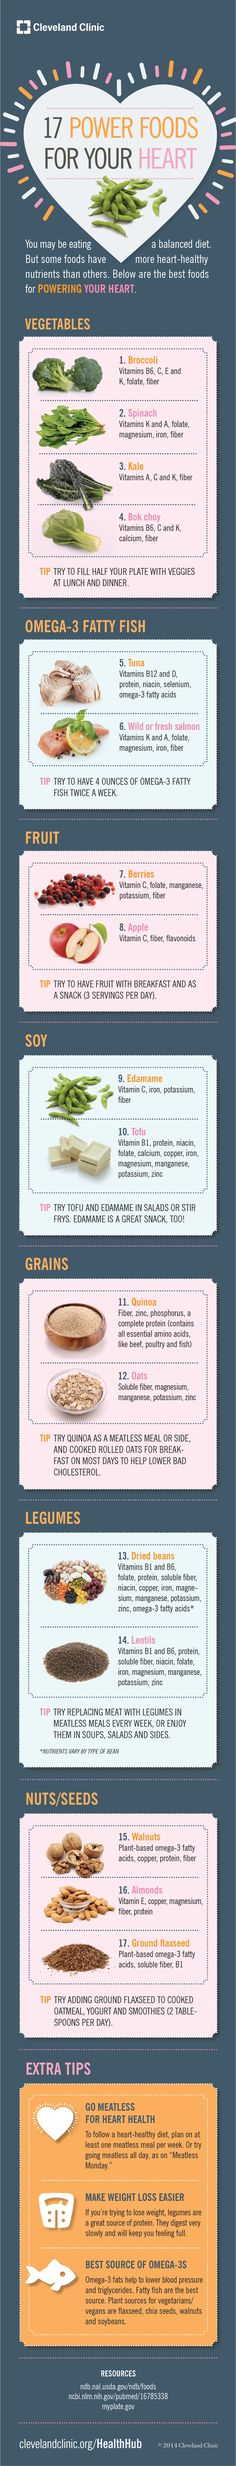 Energize your heart with these 17 power foods. Infographic on HealthHub from Cleveland Clinic. #weightlossrecipes